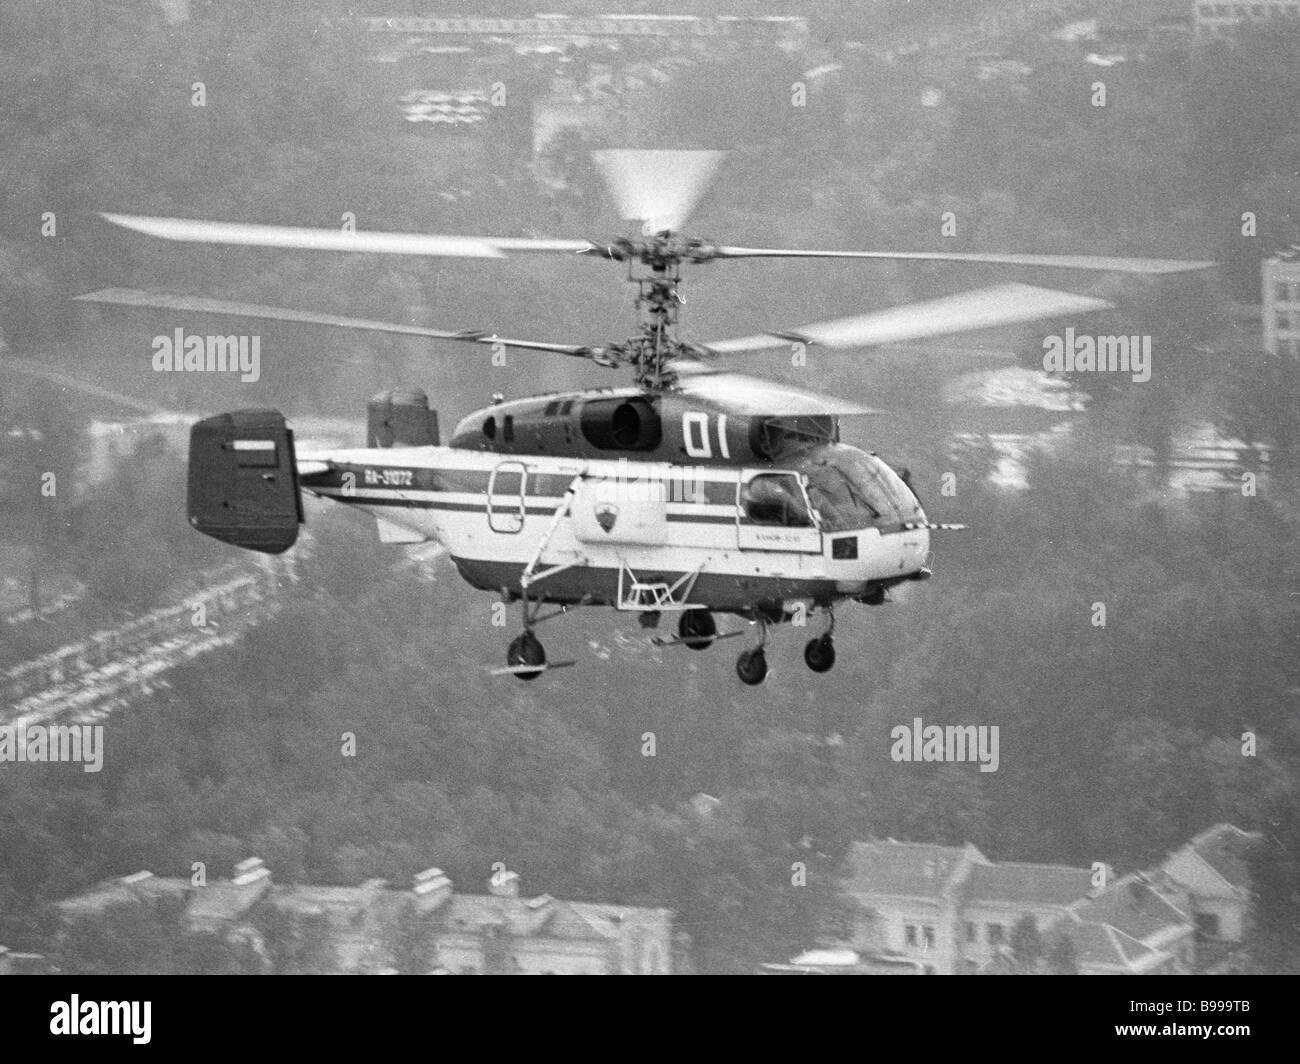 The KA 32 a1 fire fighting helicopter Stock Photo: 22947579